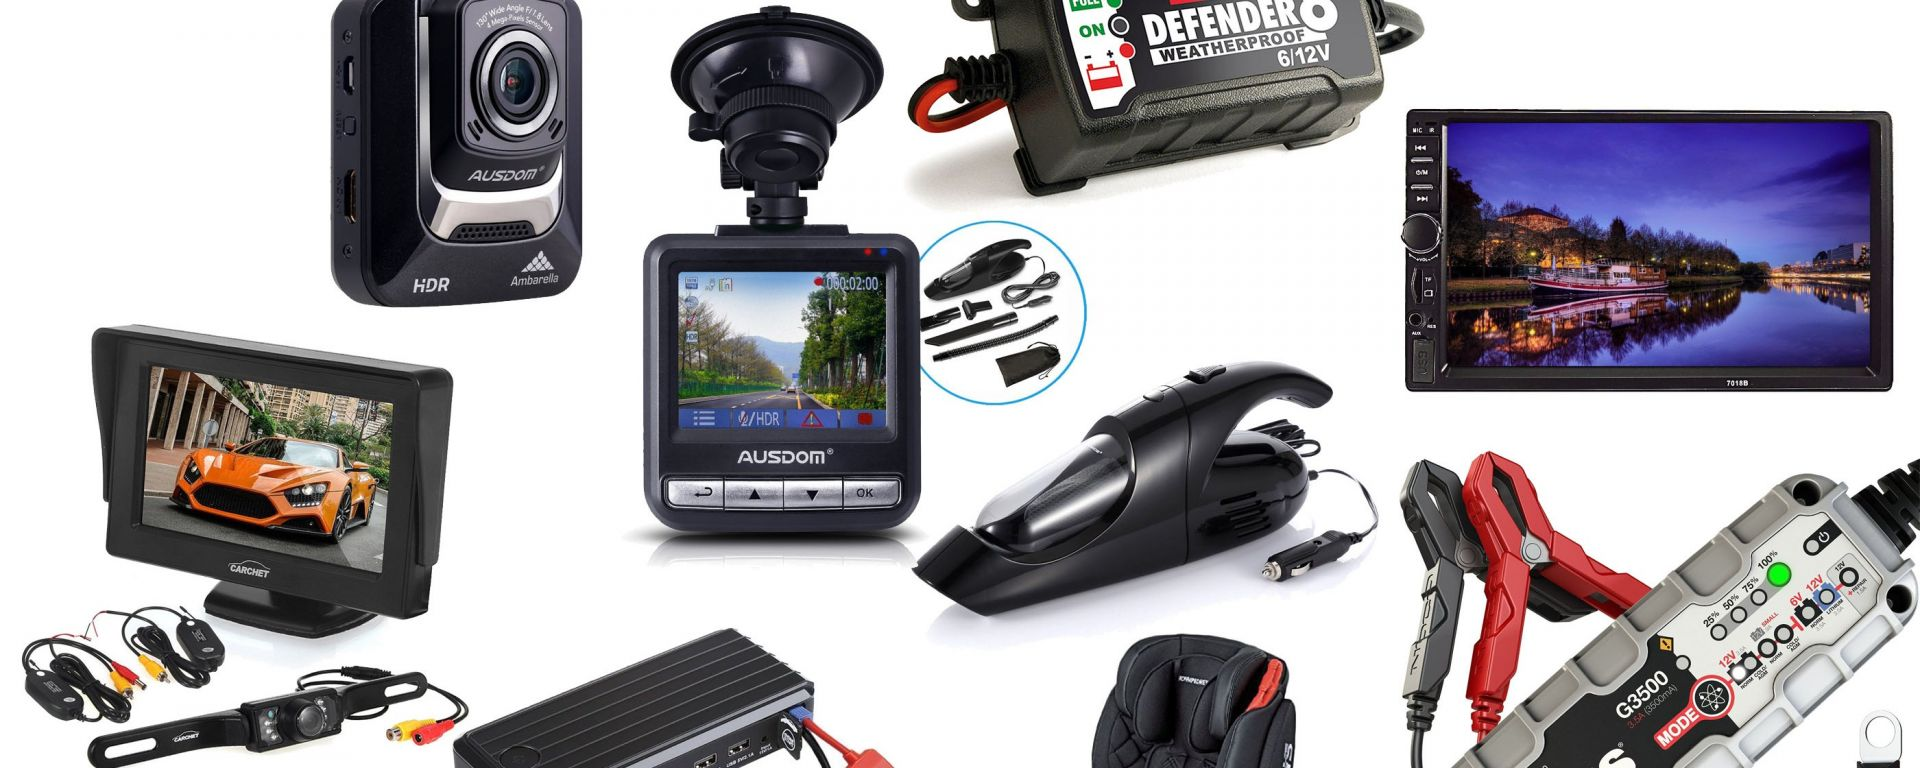 77a588b651 Sconti: Black Friday: su Amazon sconti per accessori auto - MotorBox